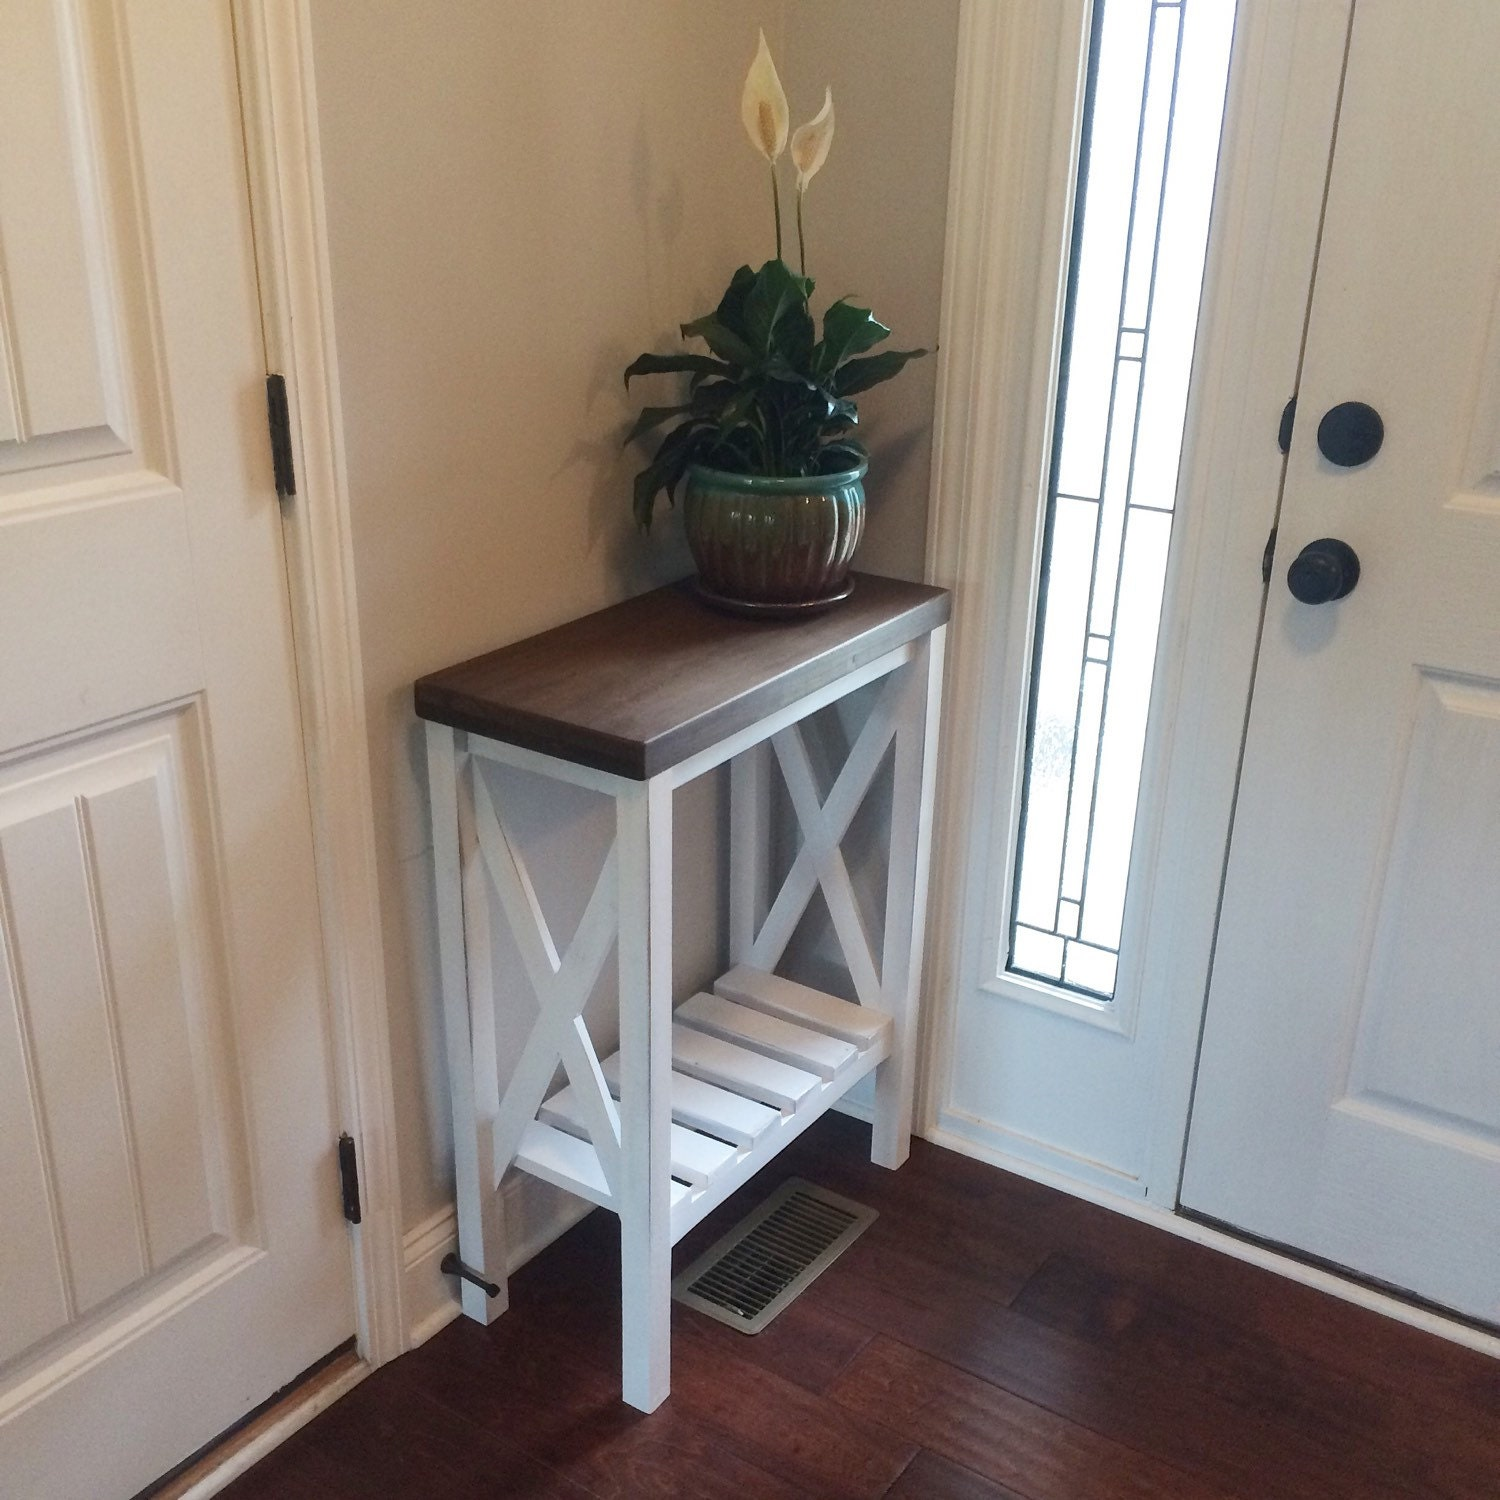 Foyer Table Etsy : Farmhouse style entryway table by magnoliasandhardware on etsy